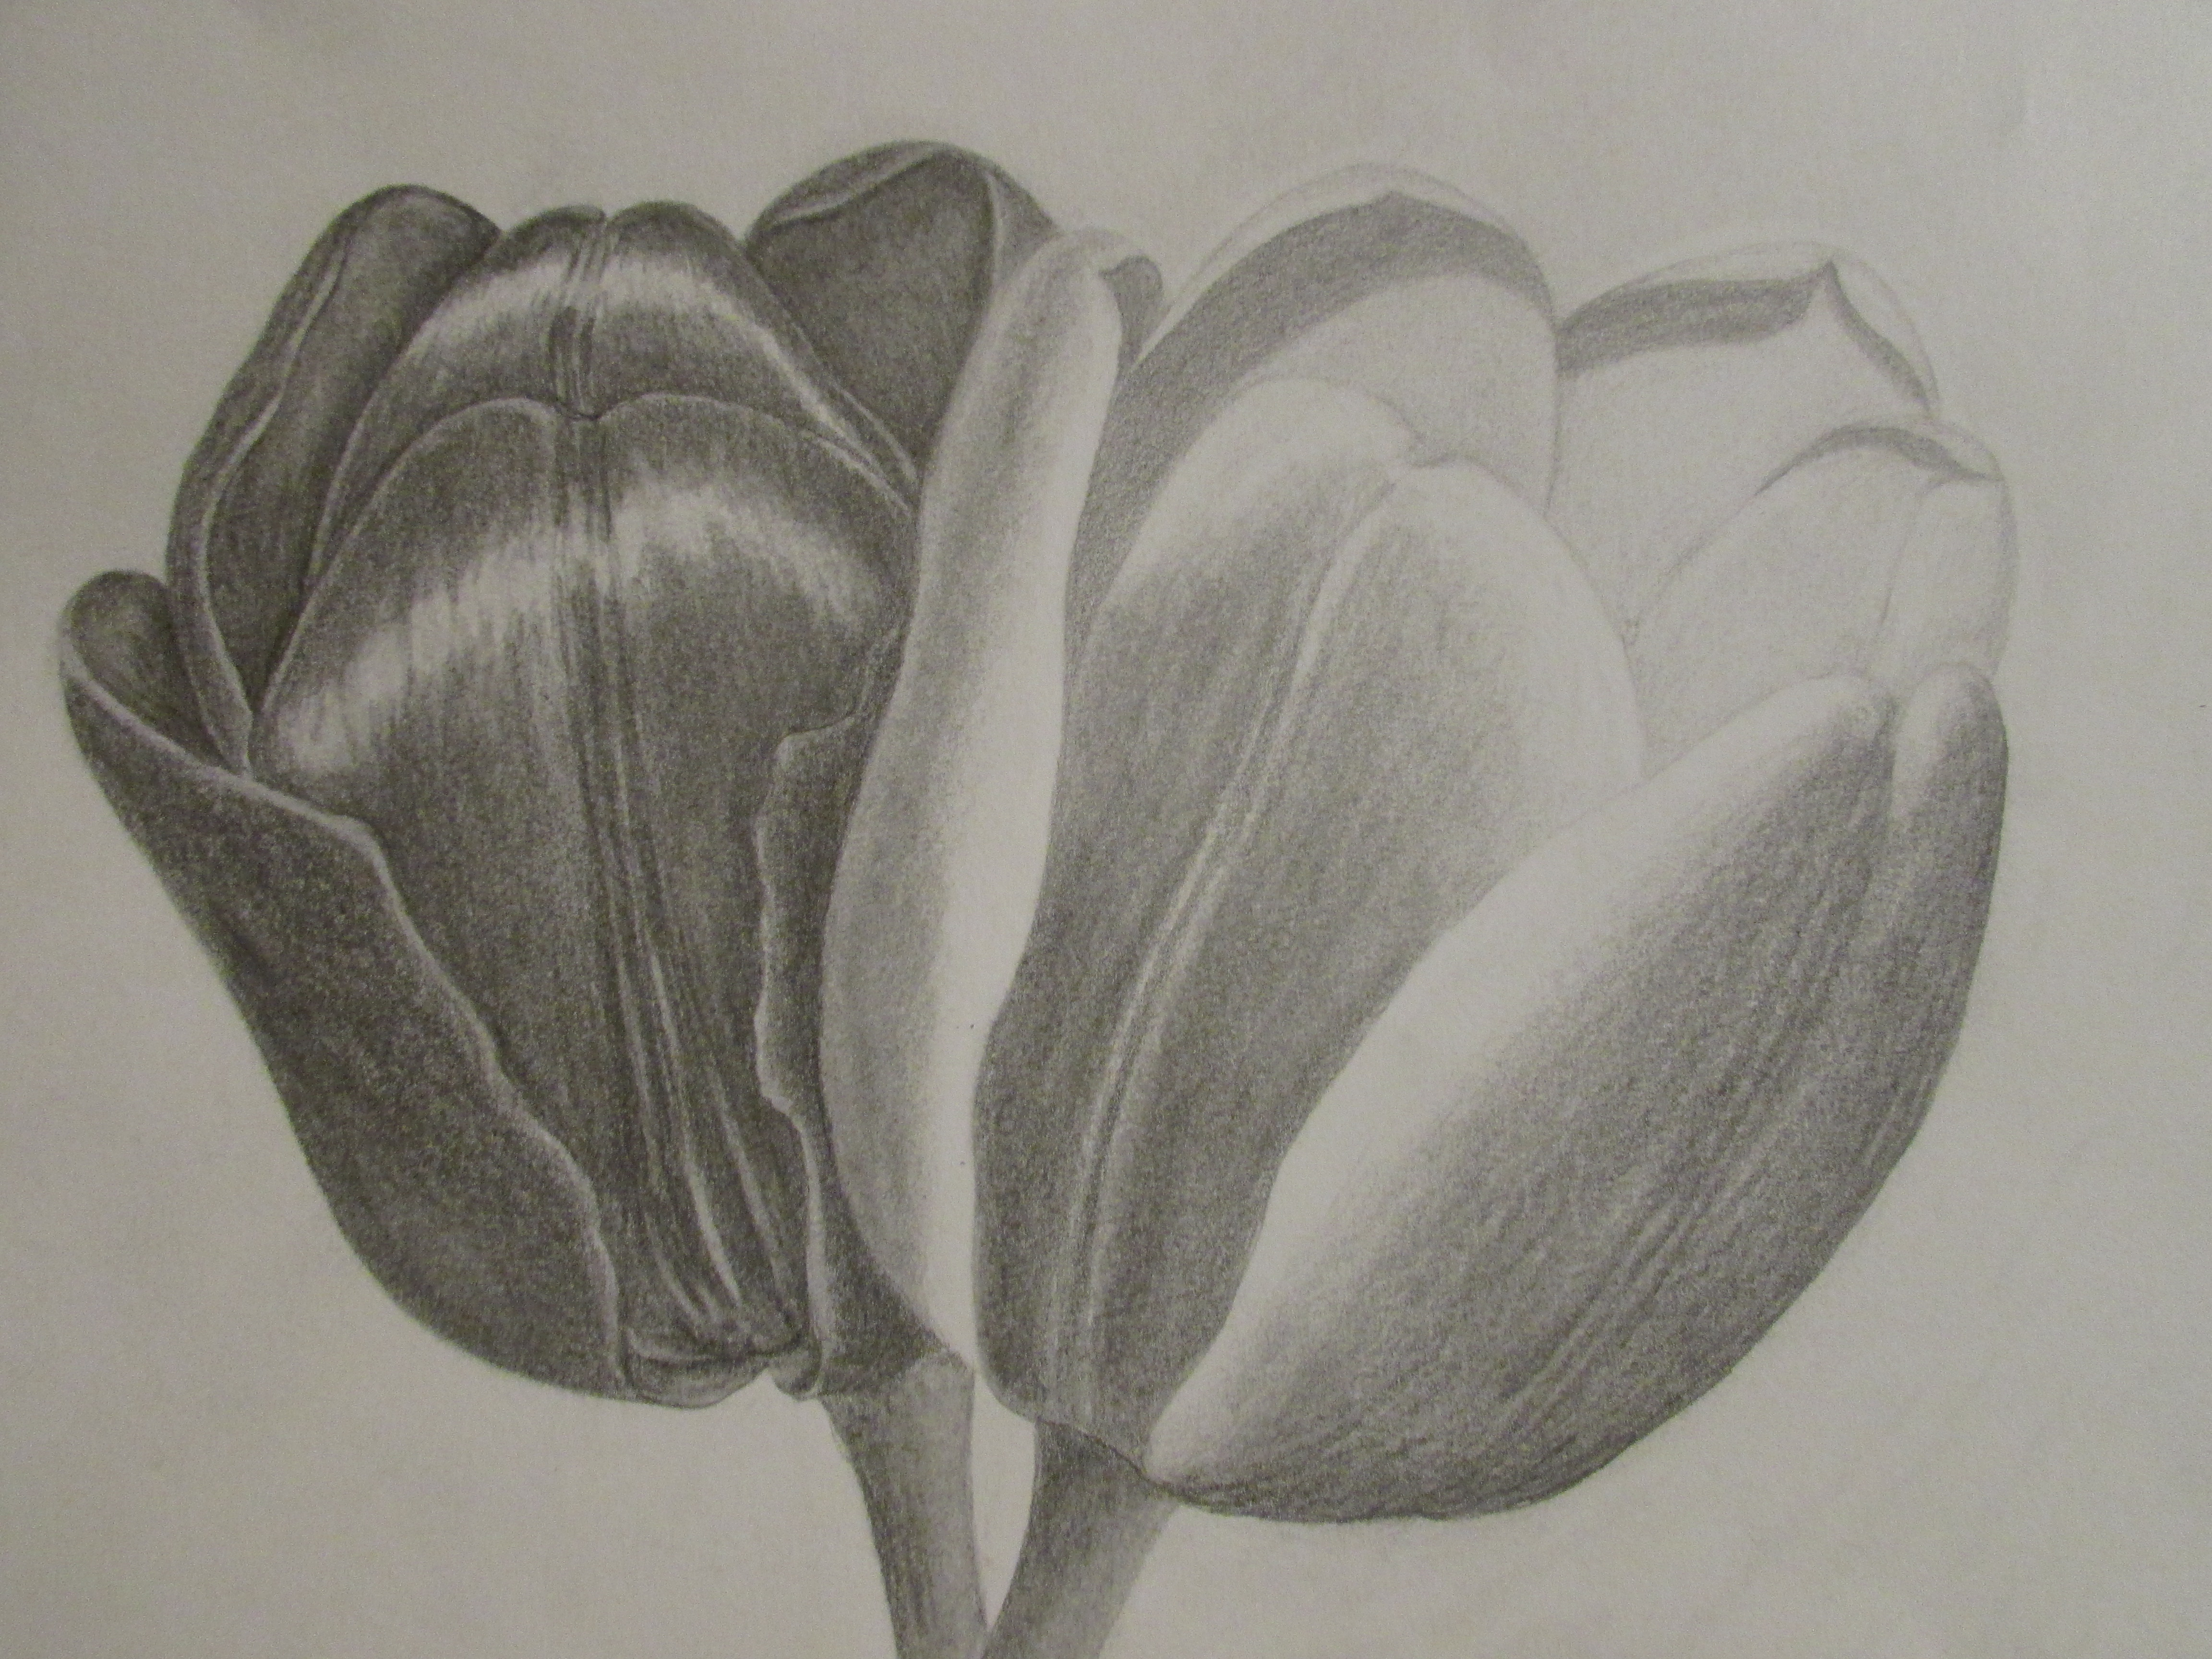 4608x3456 Pencil Shading Sketches Flowers Pencil Kpwms Art